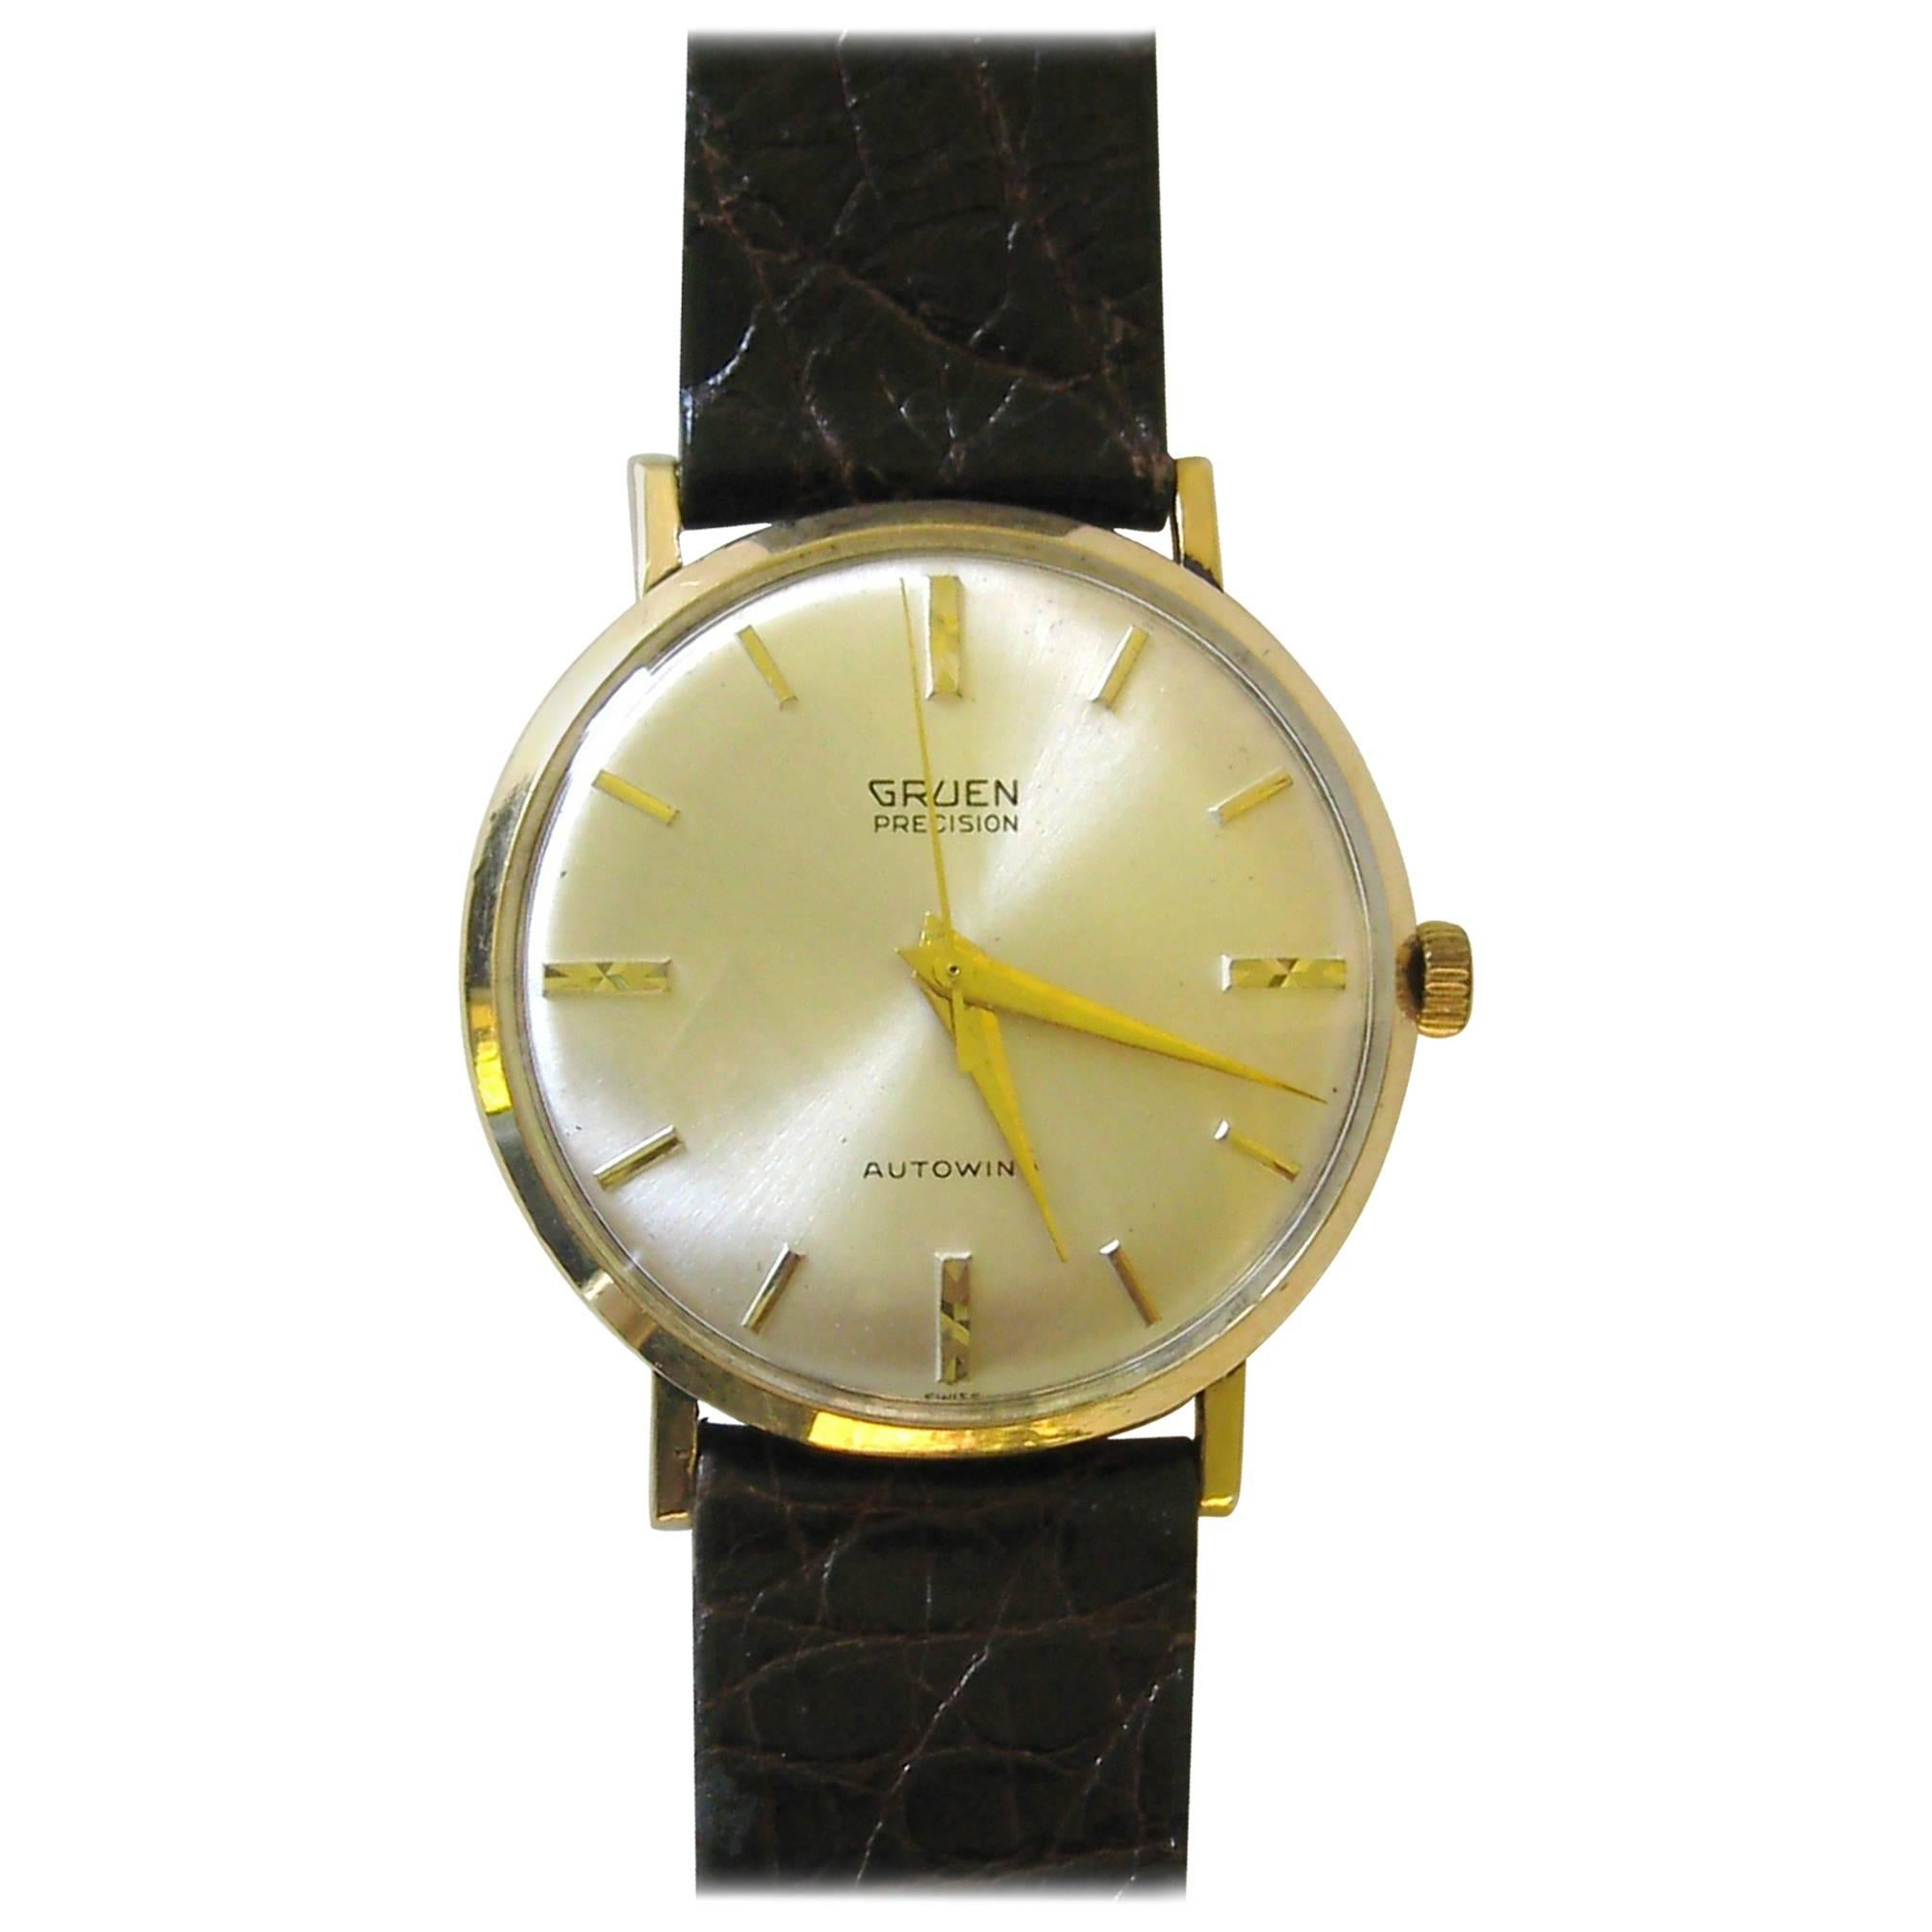 Gruen 18 Karat Yellow Gold Precision Automatic Wristwatch, 1960s